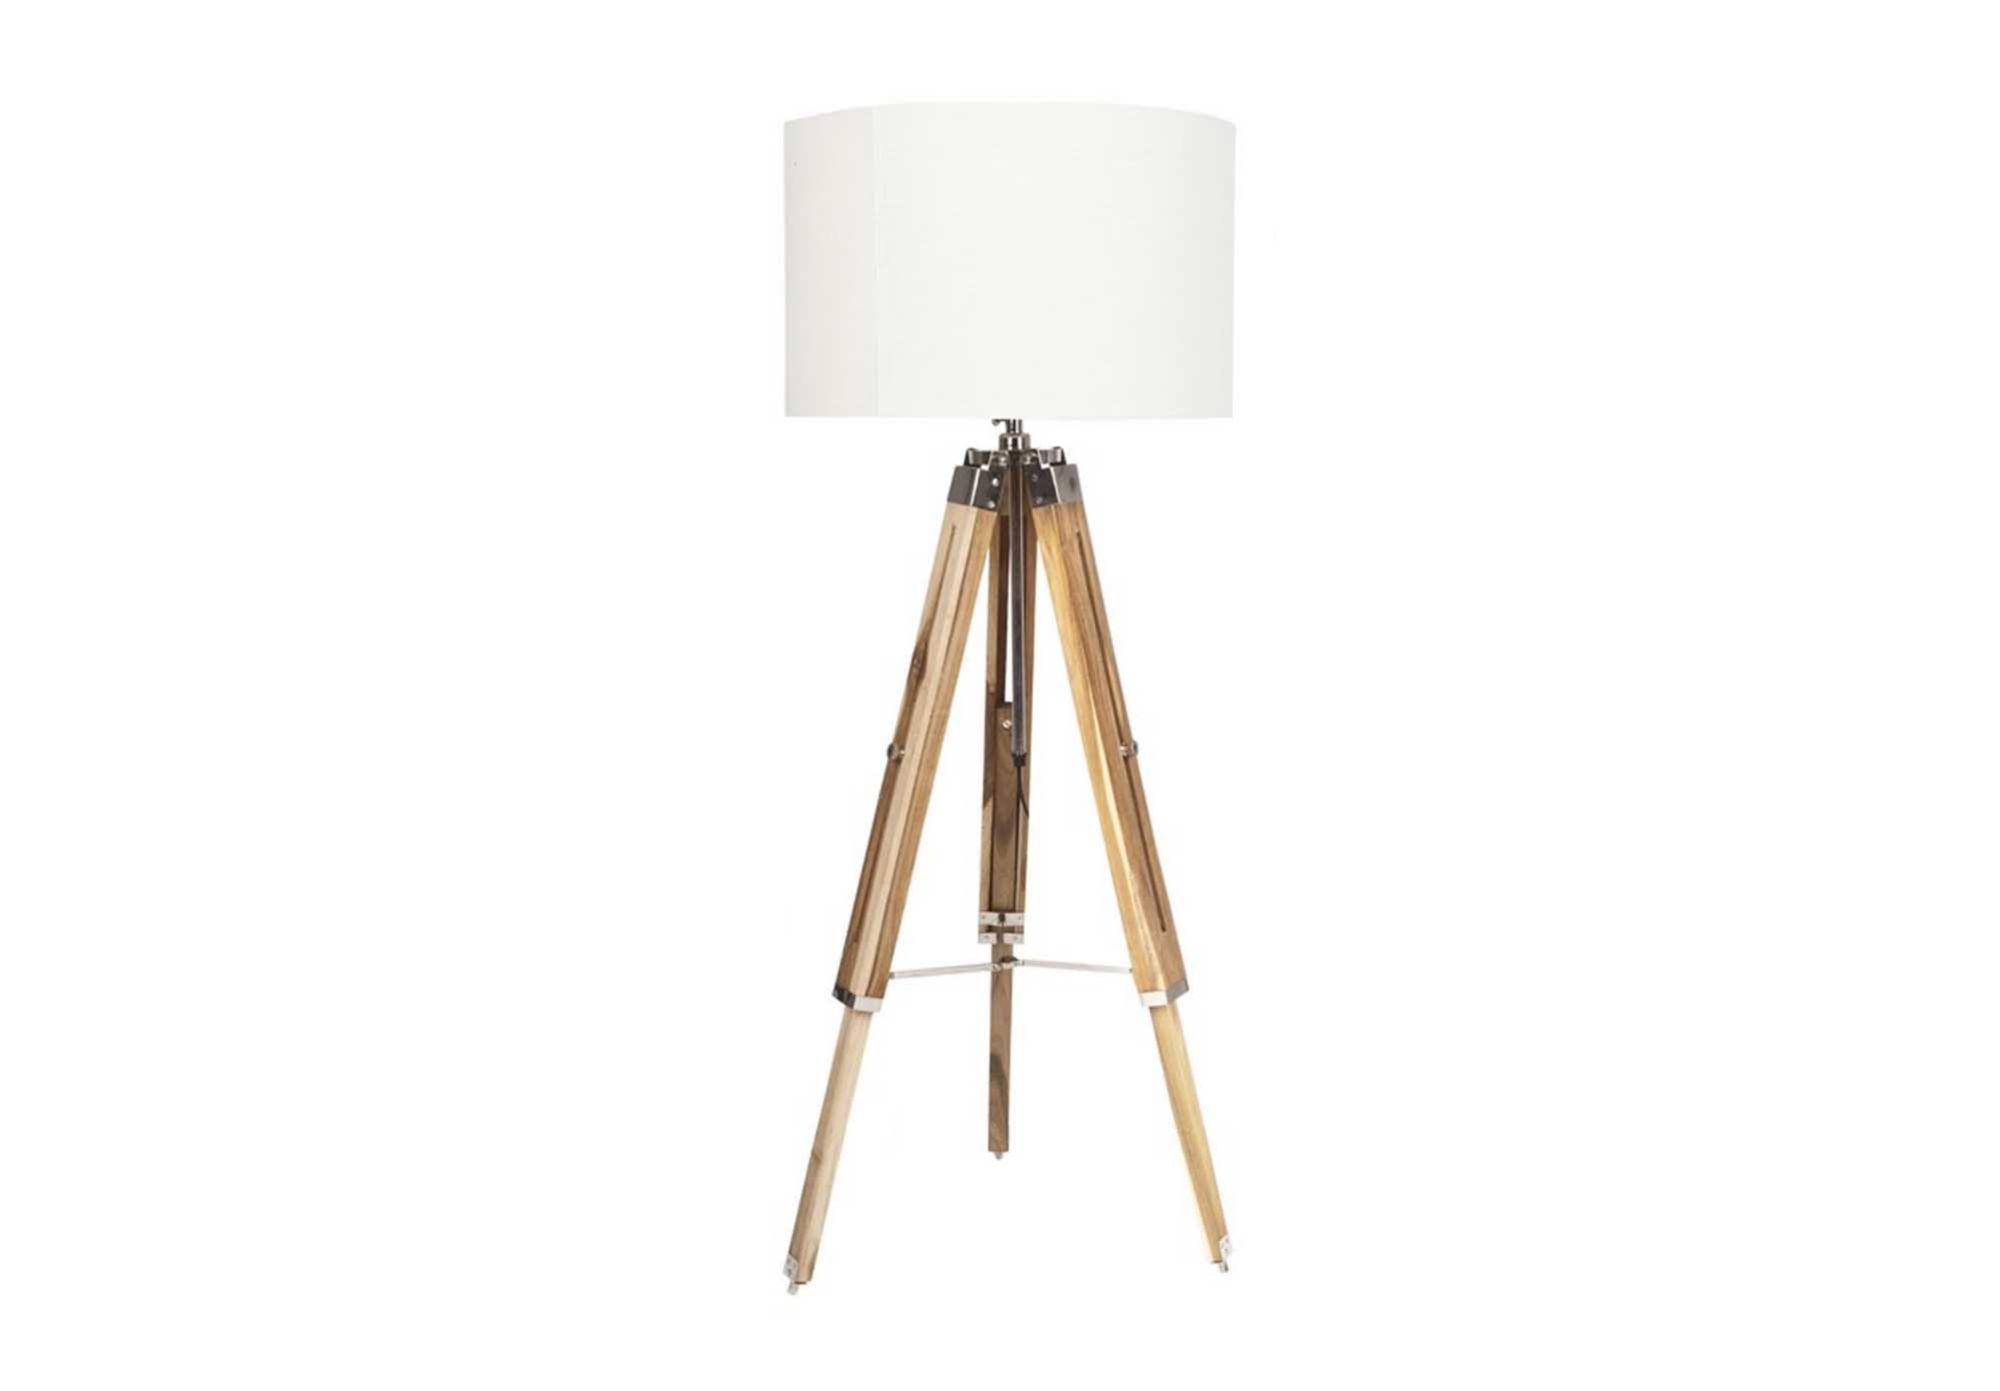 Our Tripod Floor Lamp is GORGEOUS! We just love the wooden legs and we think it fits the Scandinavian style perfectly.